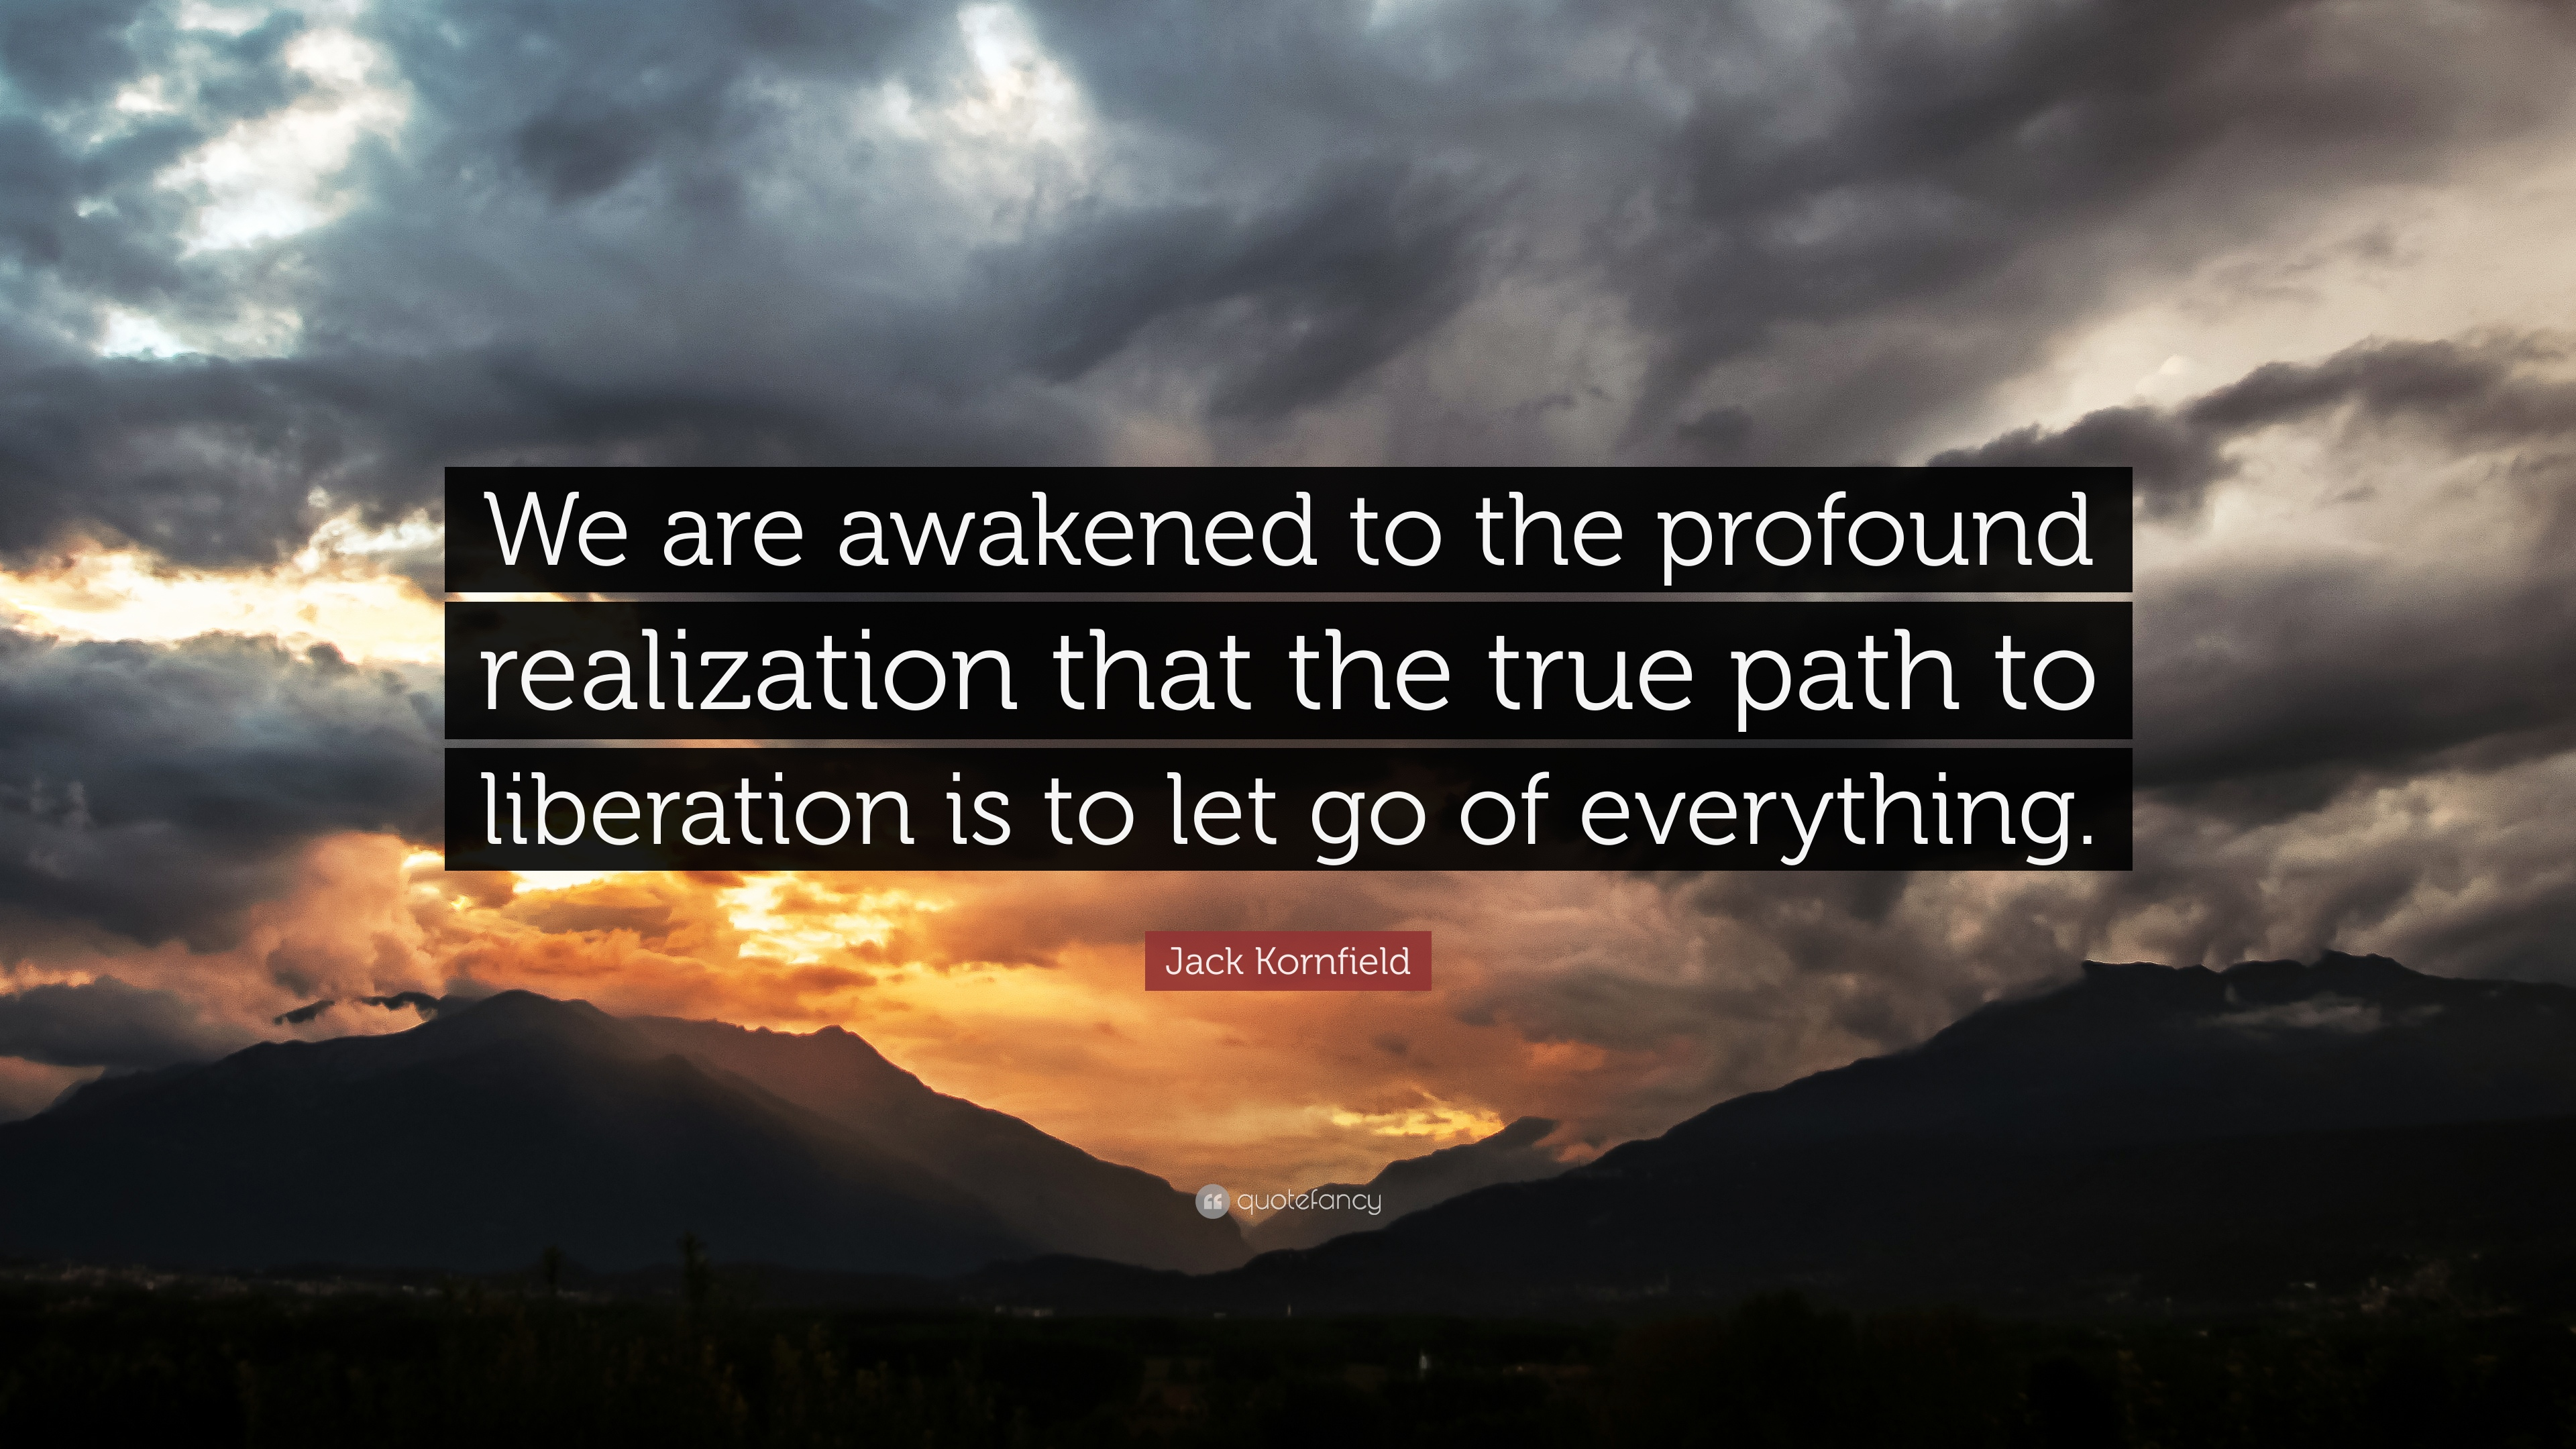 675757-Jack-Kornfield-Quote-We-are-awakened-to-the-profound-realization